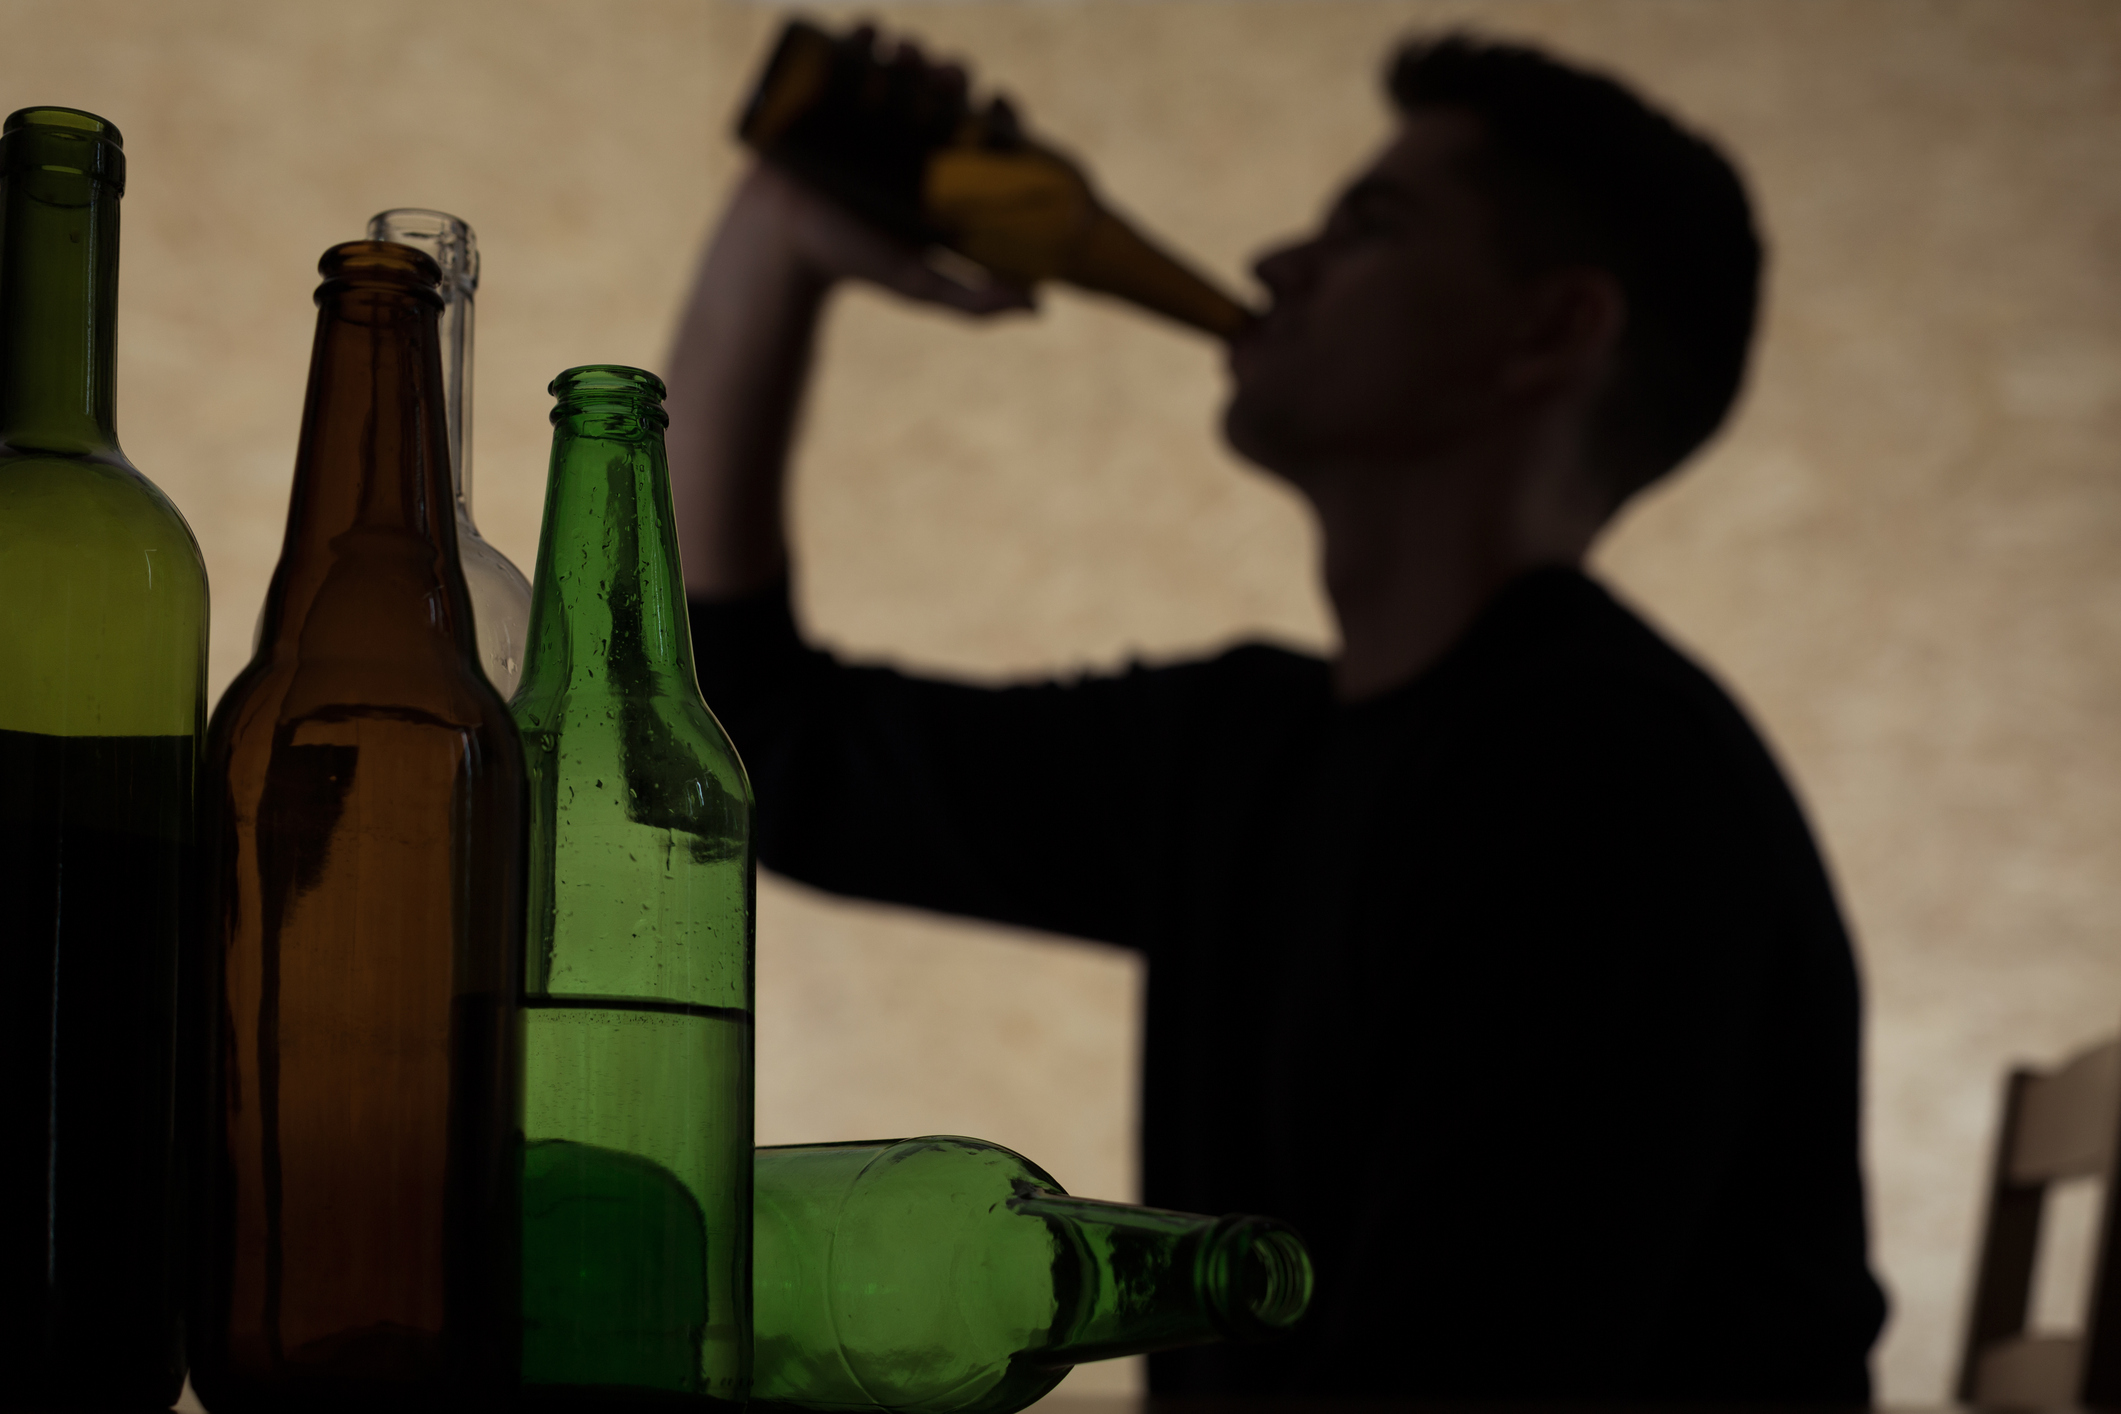 UConn Health researcher Thomas Babor led a global review of youth exposure to alcohol advertising that concludes with a recommendation for statutory controls. (KatarzynaBialasiewicz/Getty Images)